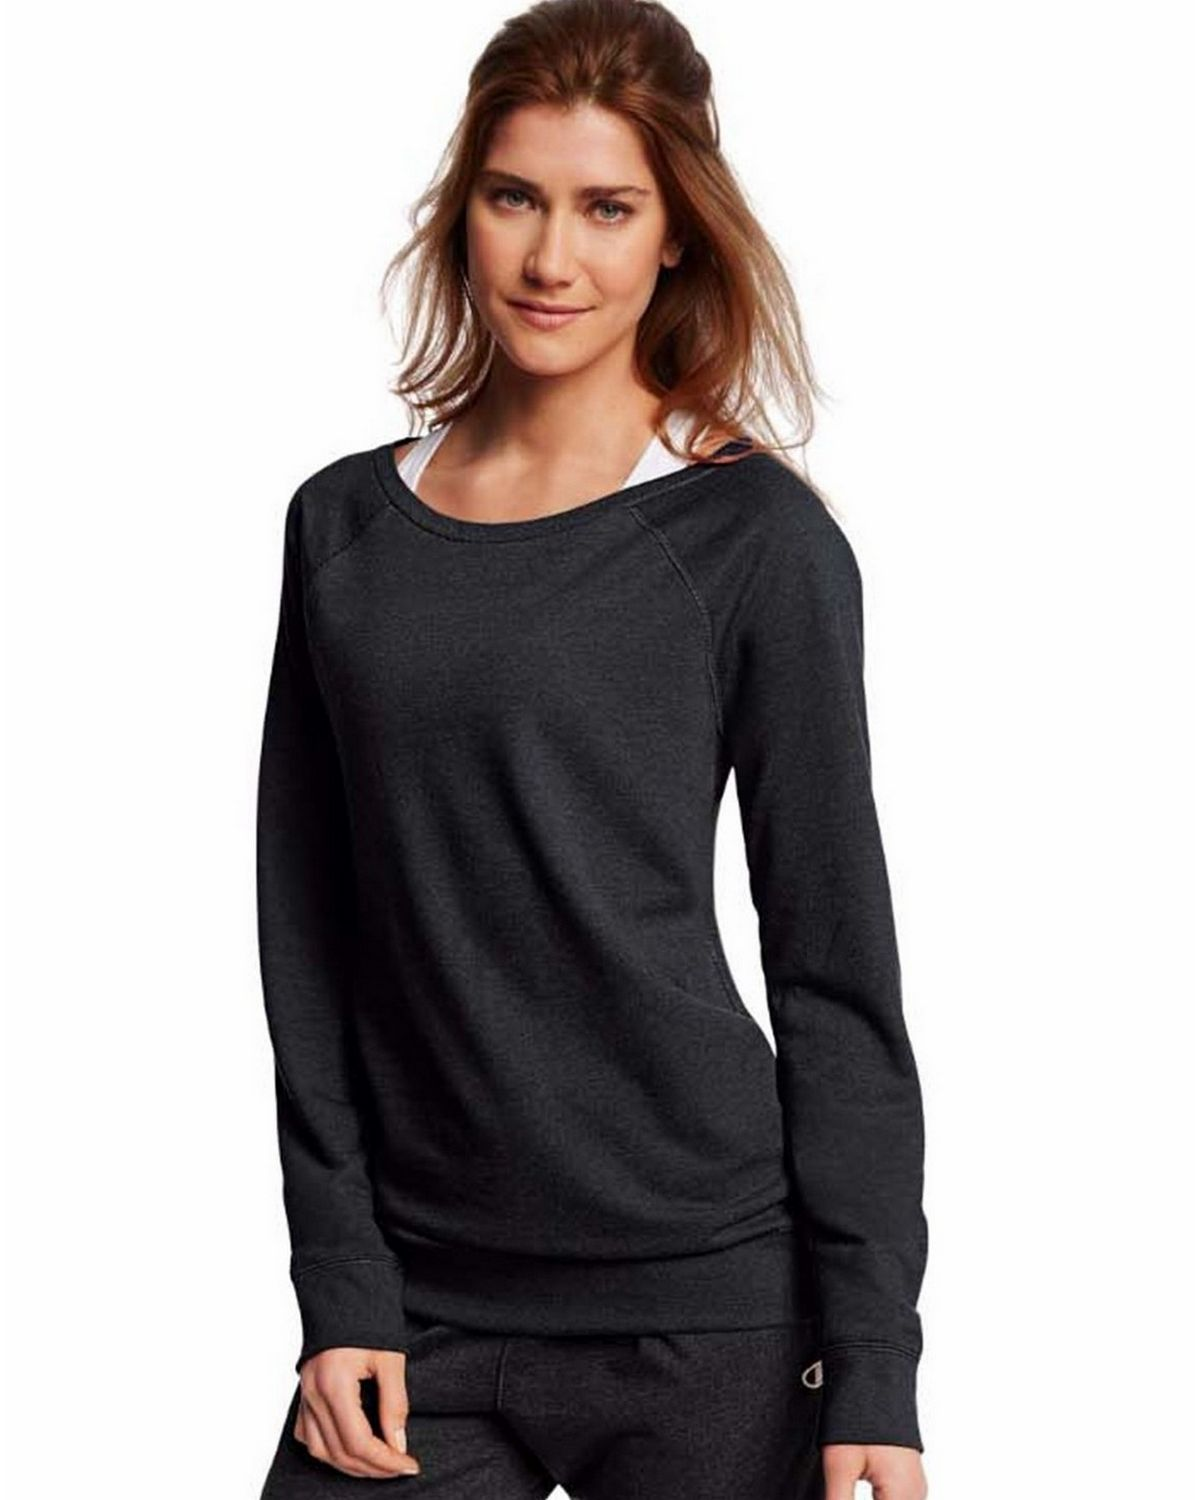 Champion Women's French Terry Pullover Sweatshirt, Black, S W0943